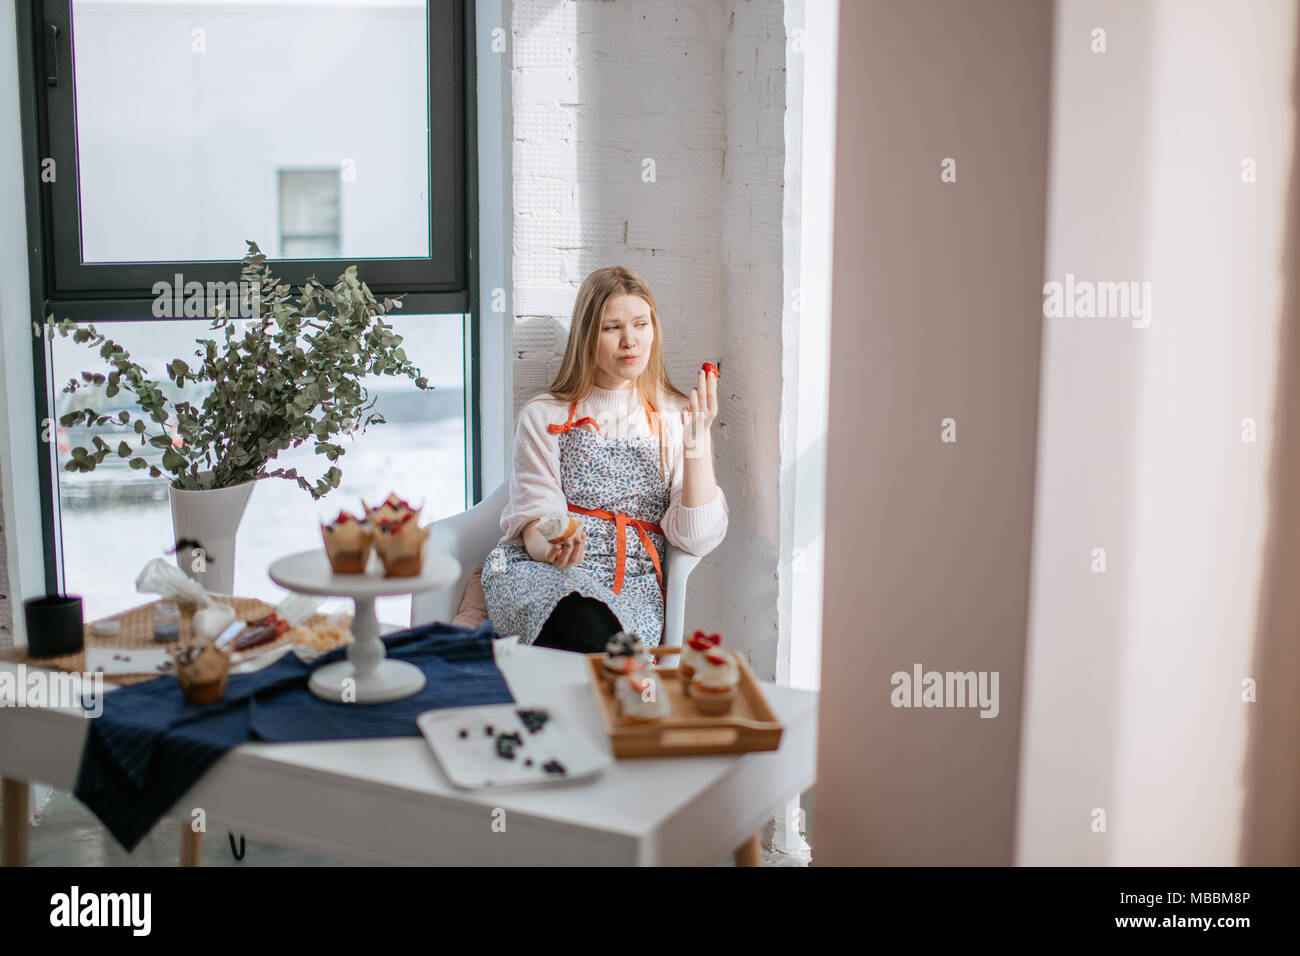 Beautiful young woman eating cupcake while sitting near window at cafe - Stock Image